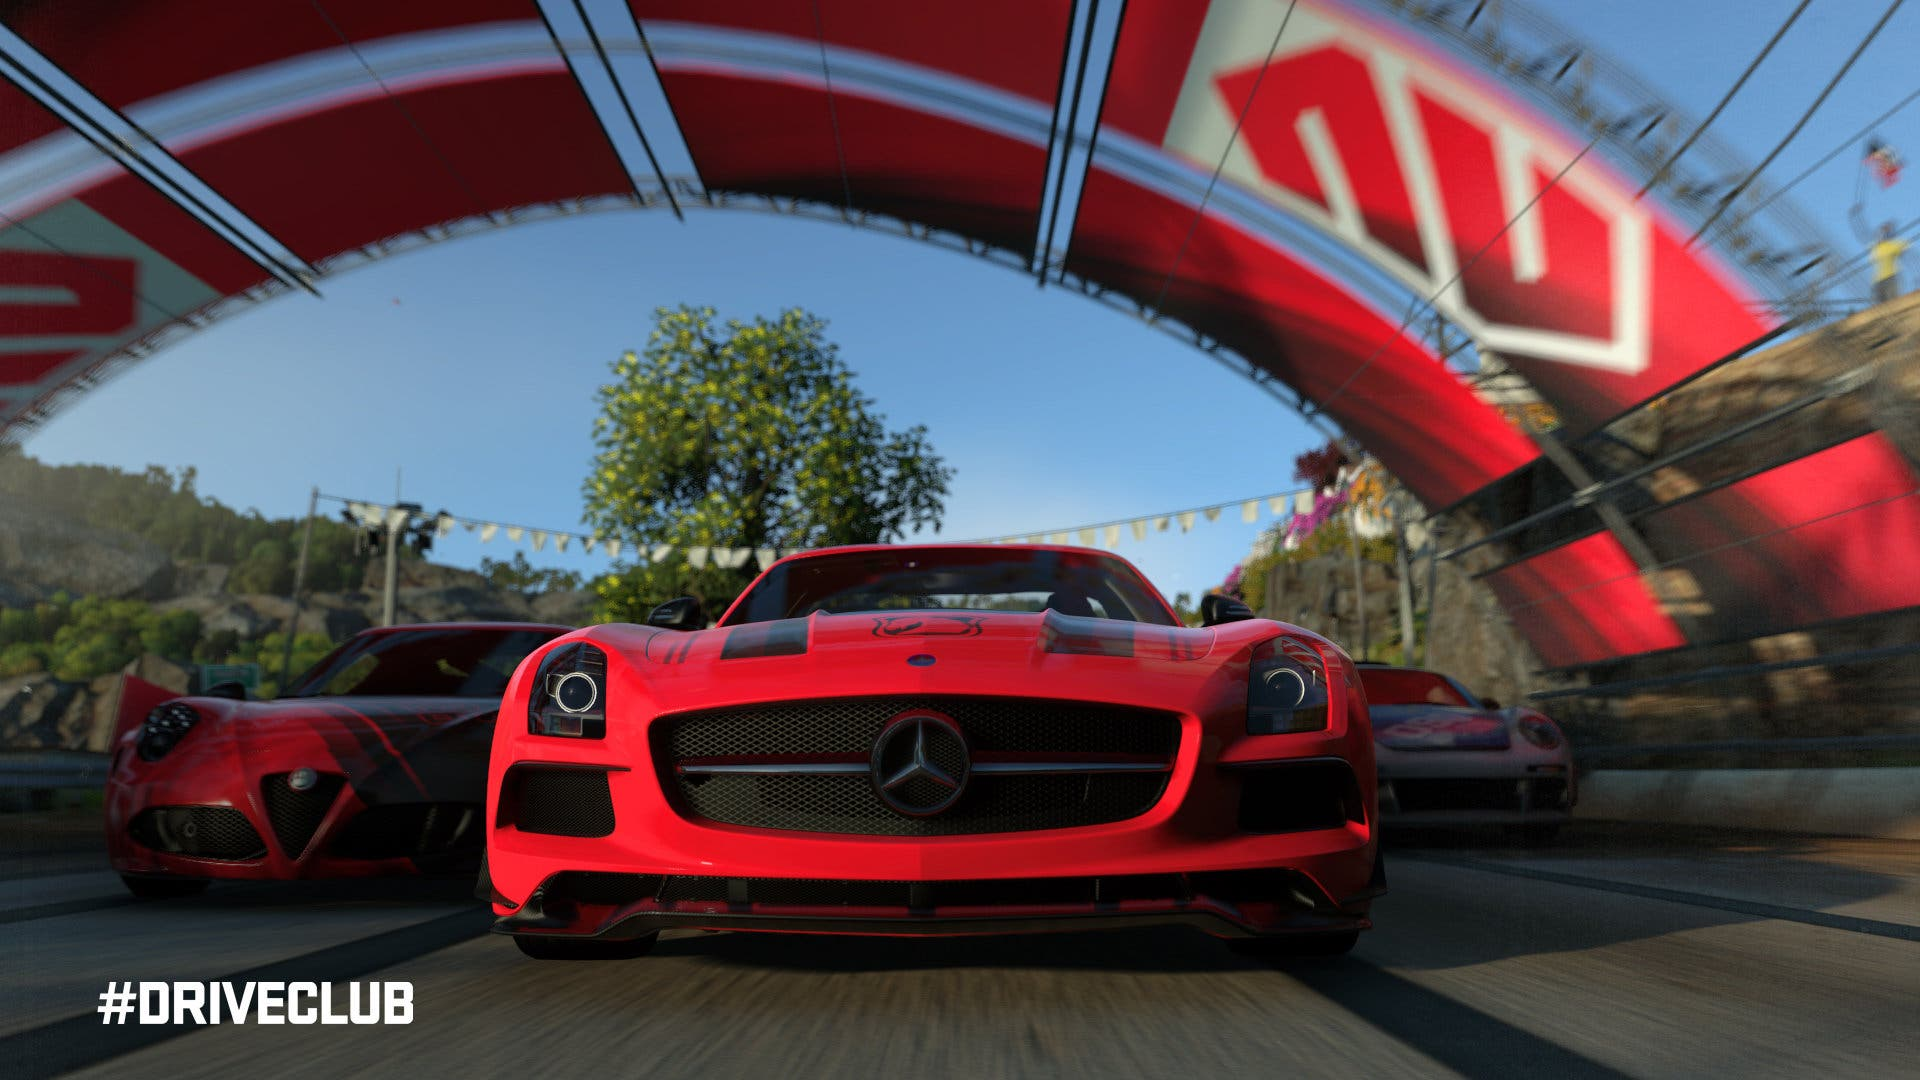 Driveclub featured